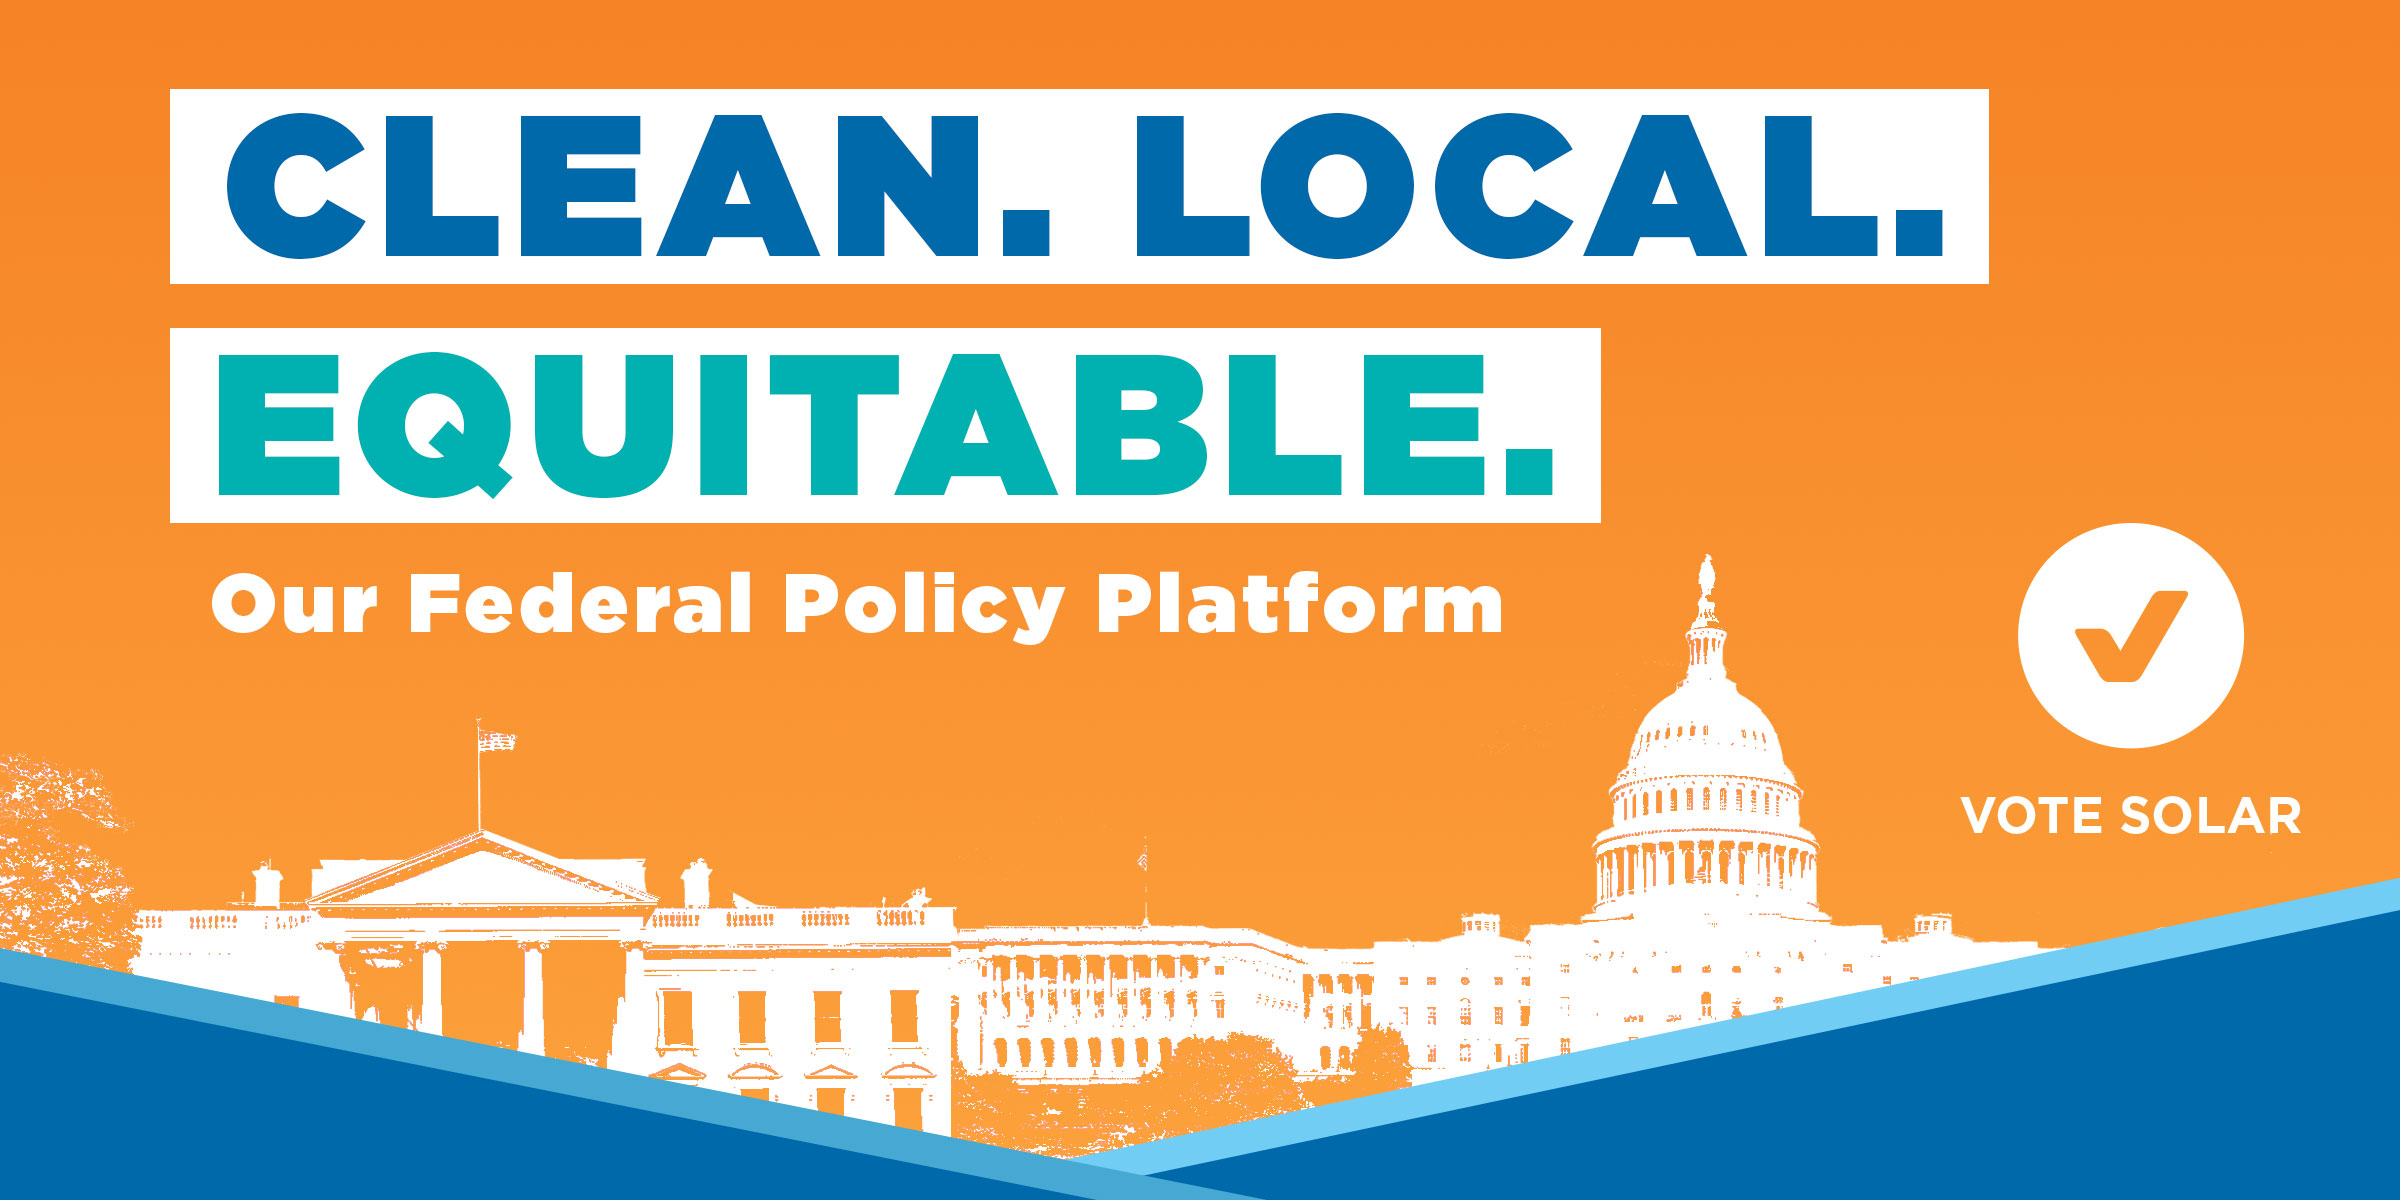 Clean. Local. Equitable. Our Federal Policy Platform